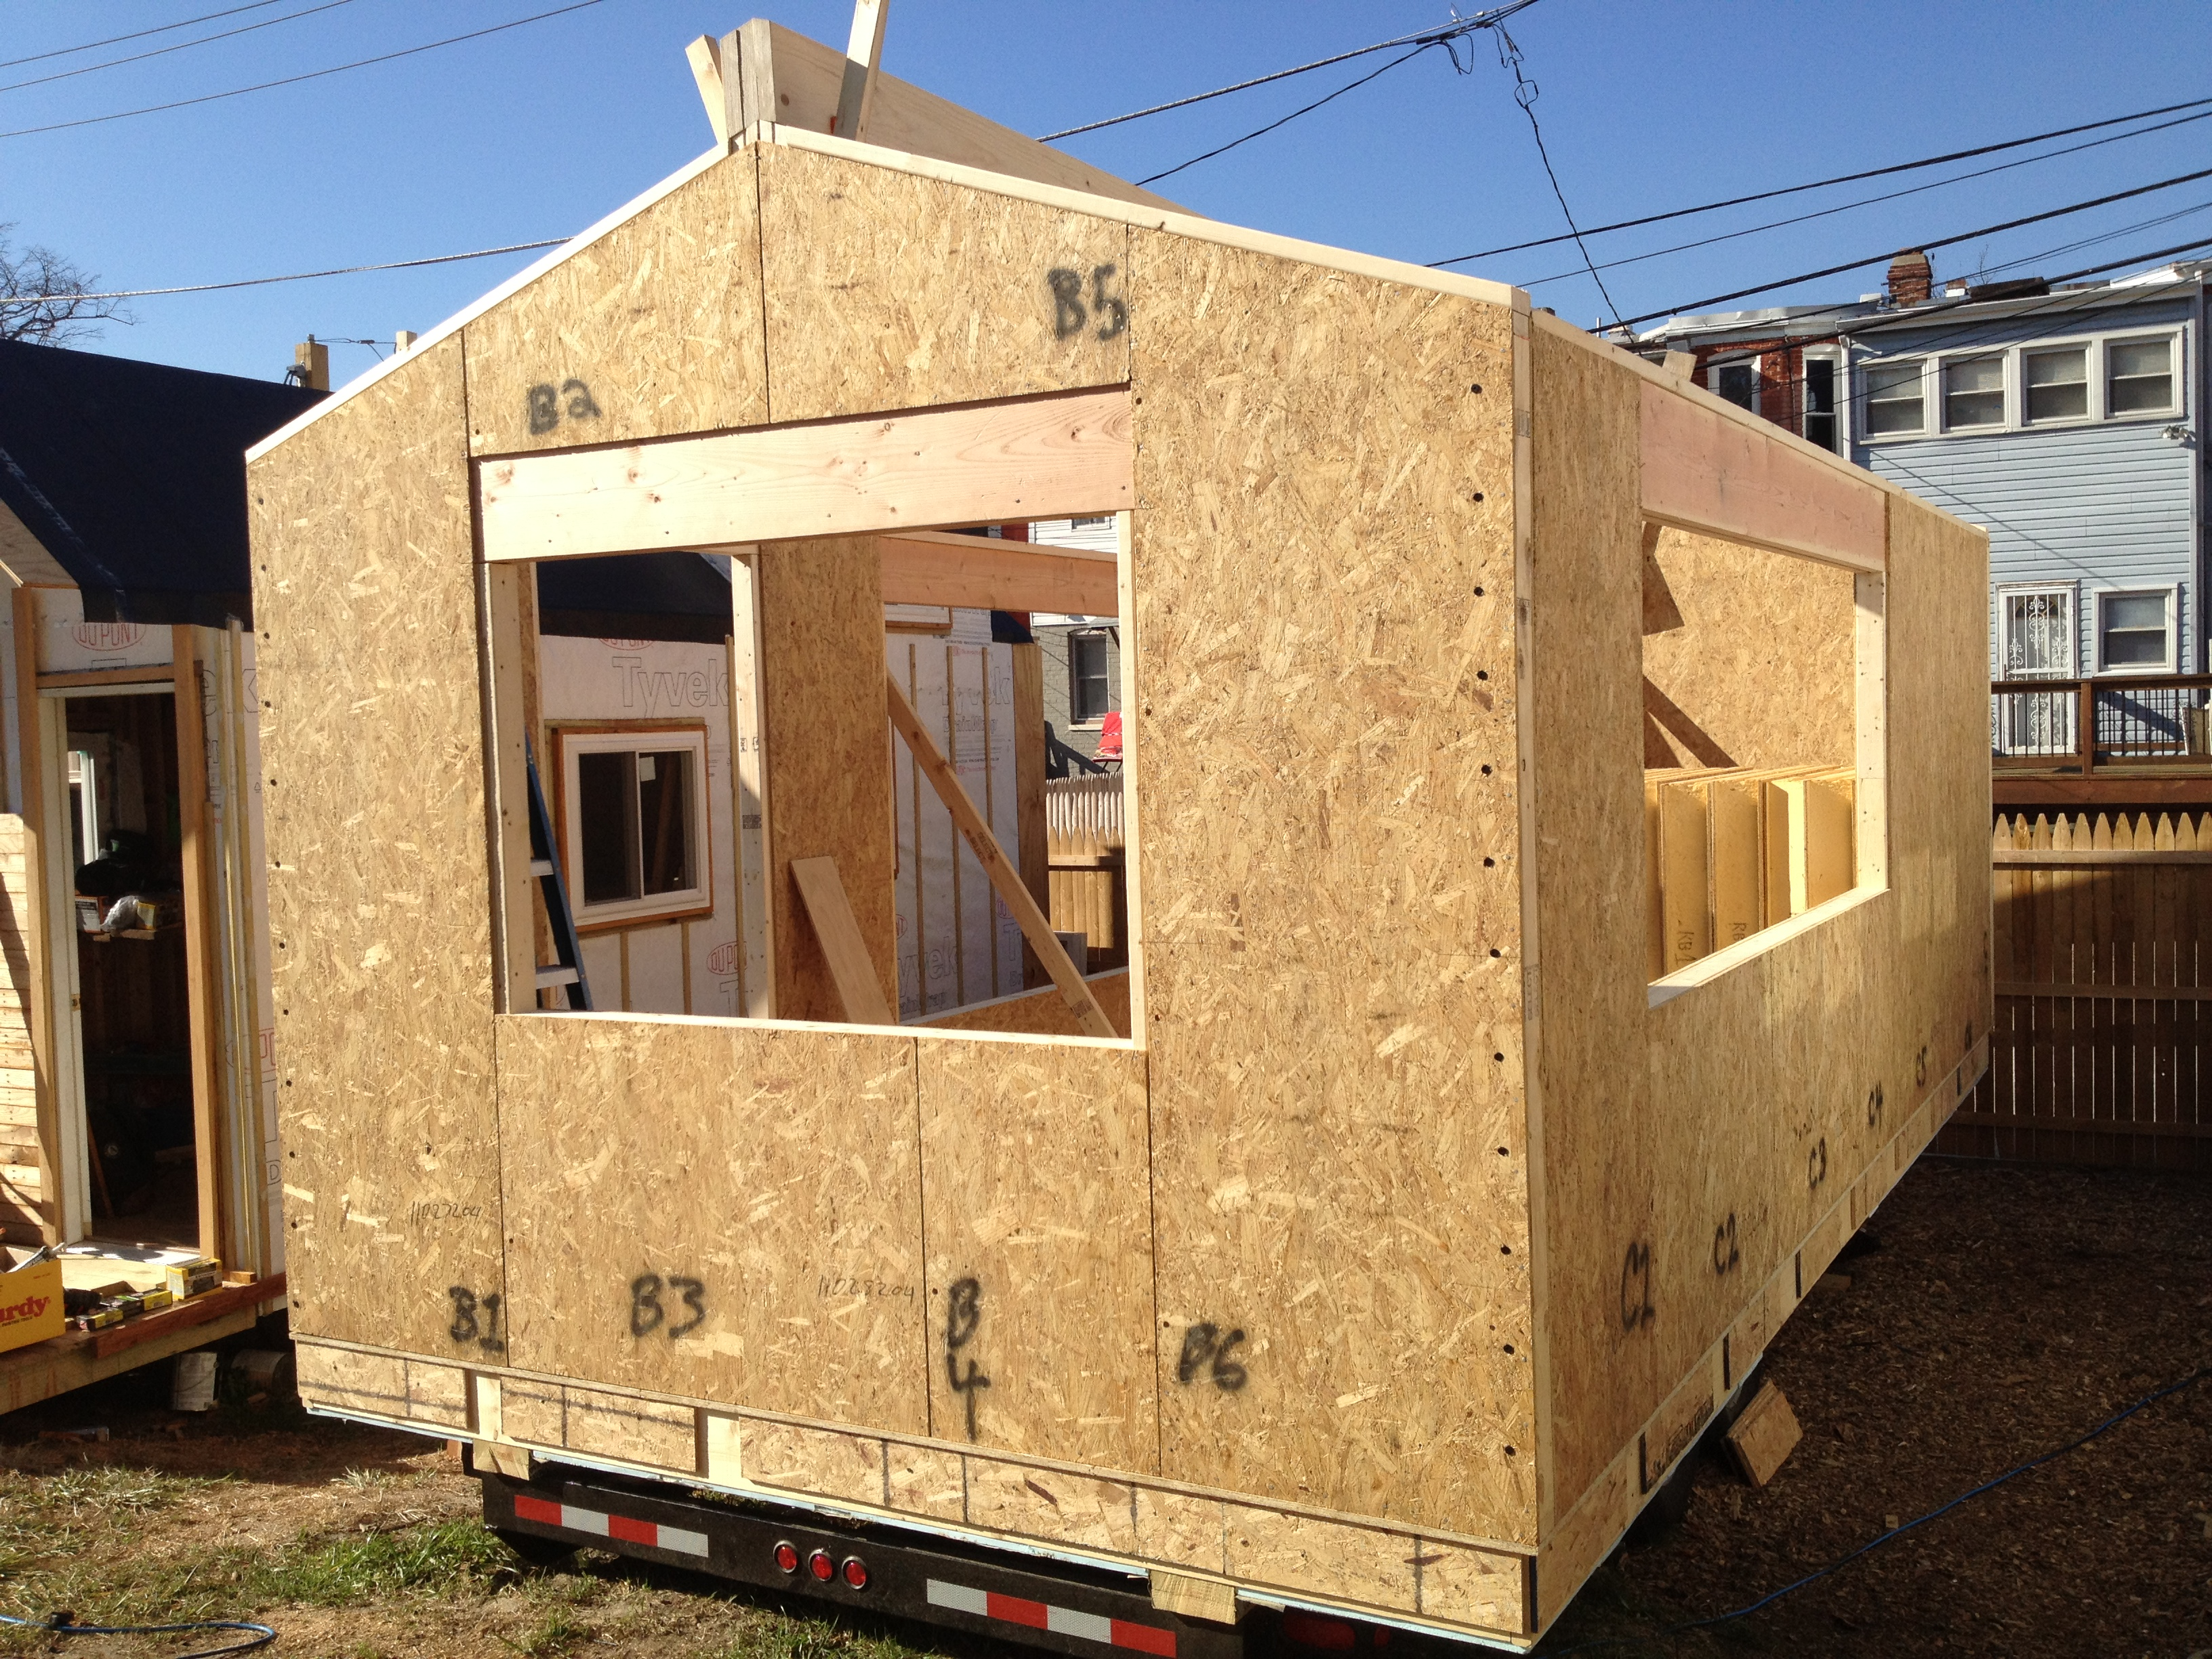 Minim house construction starts